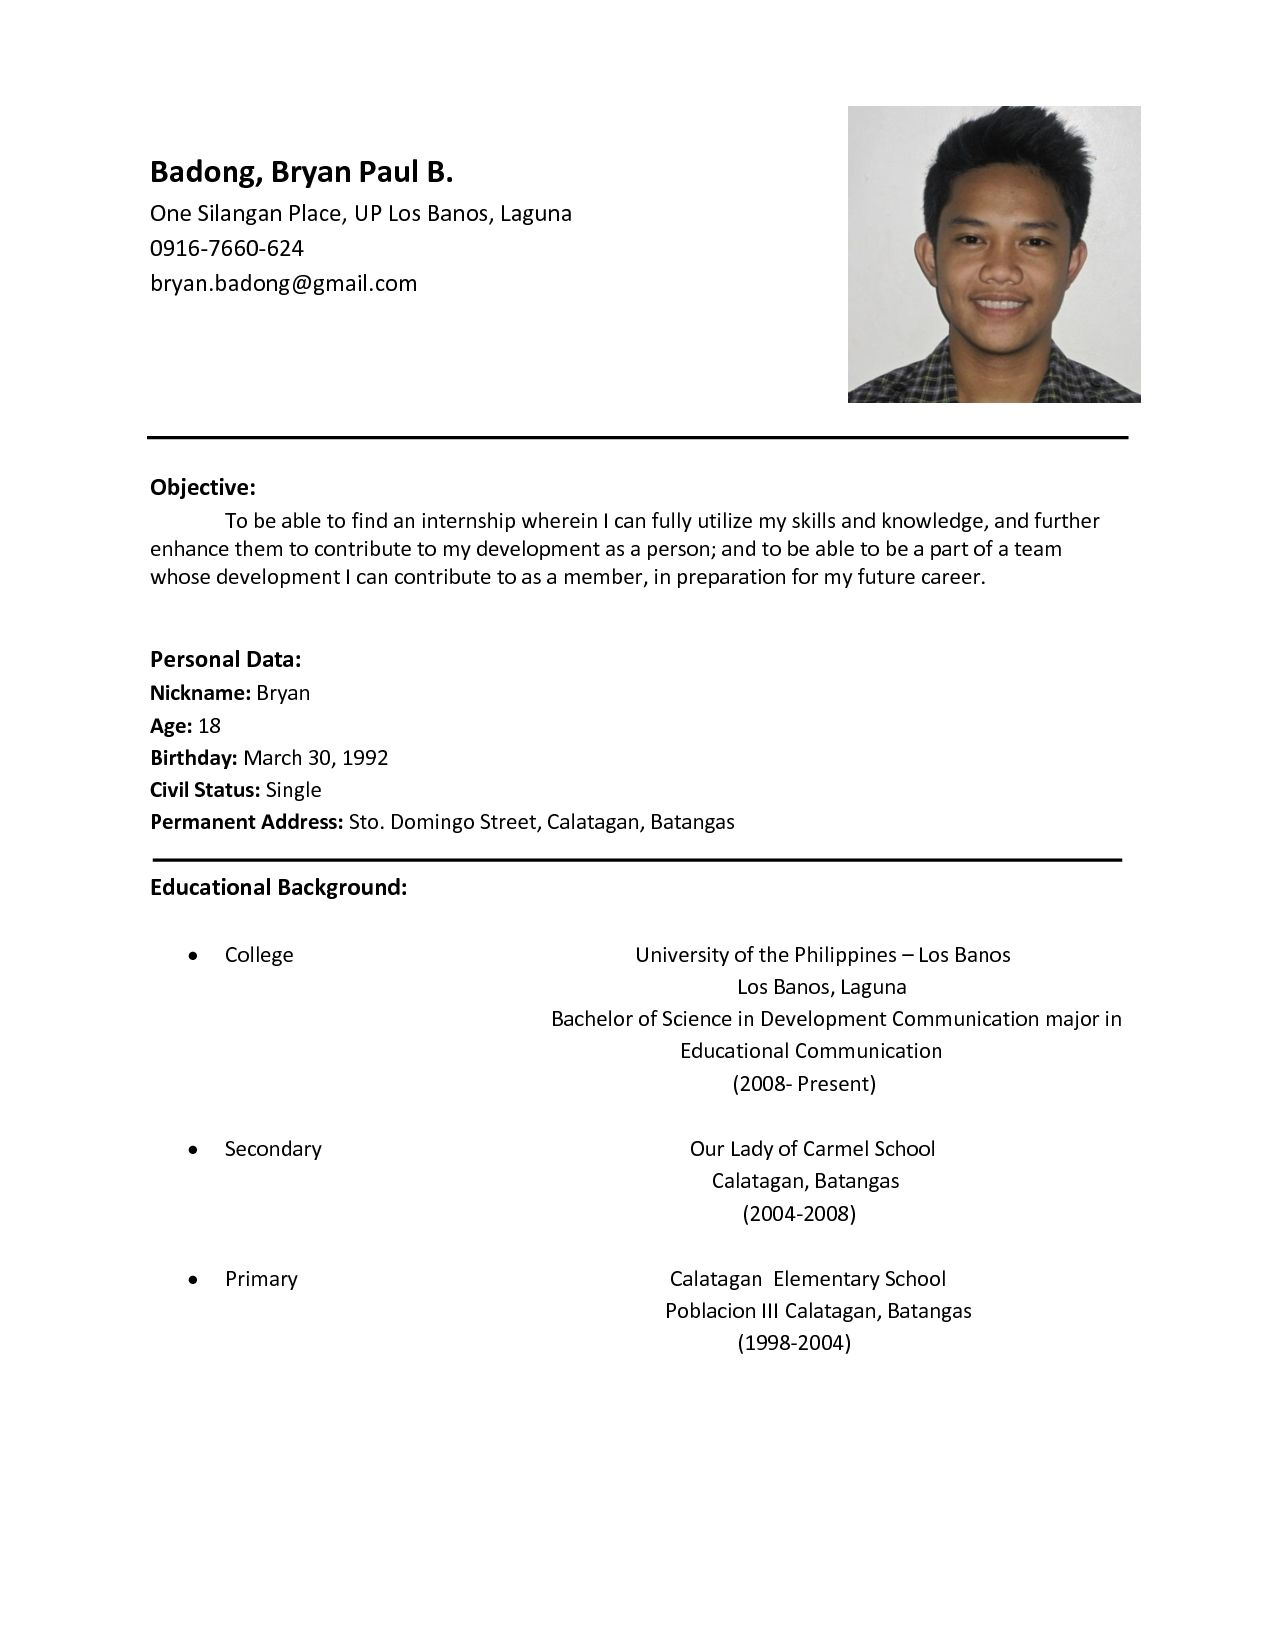 example of format of resumes